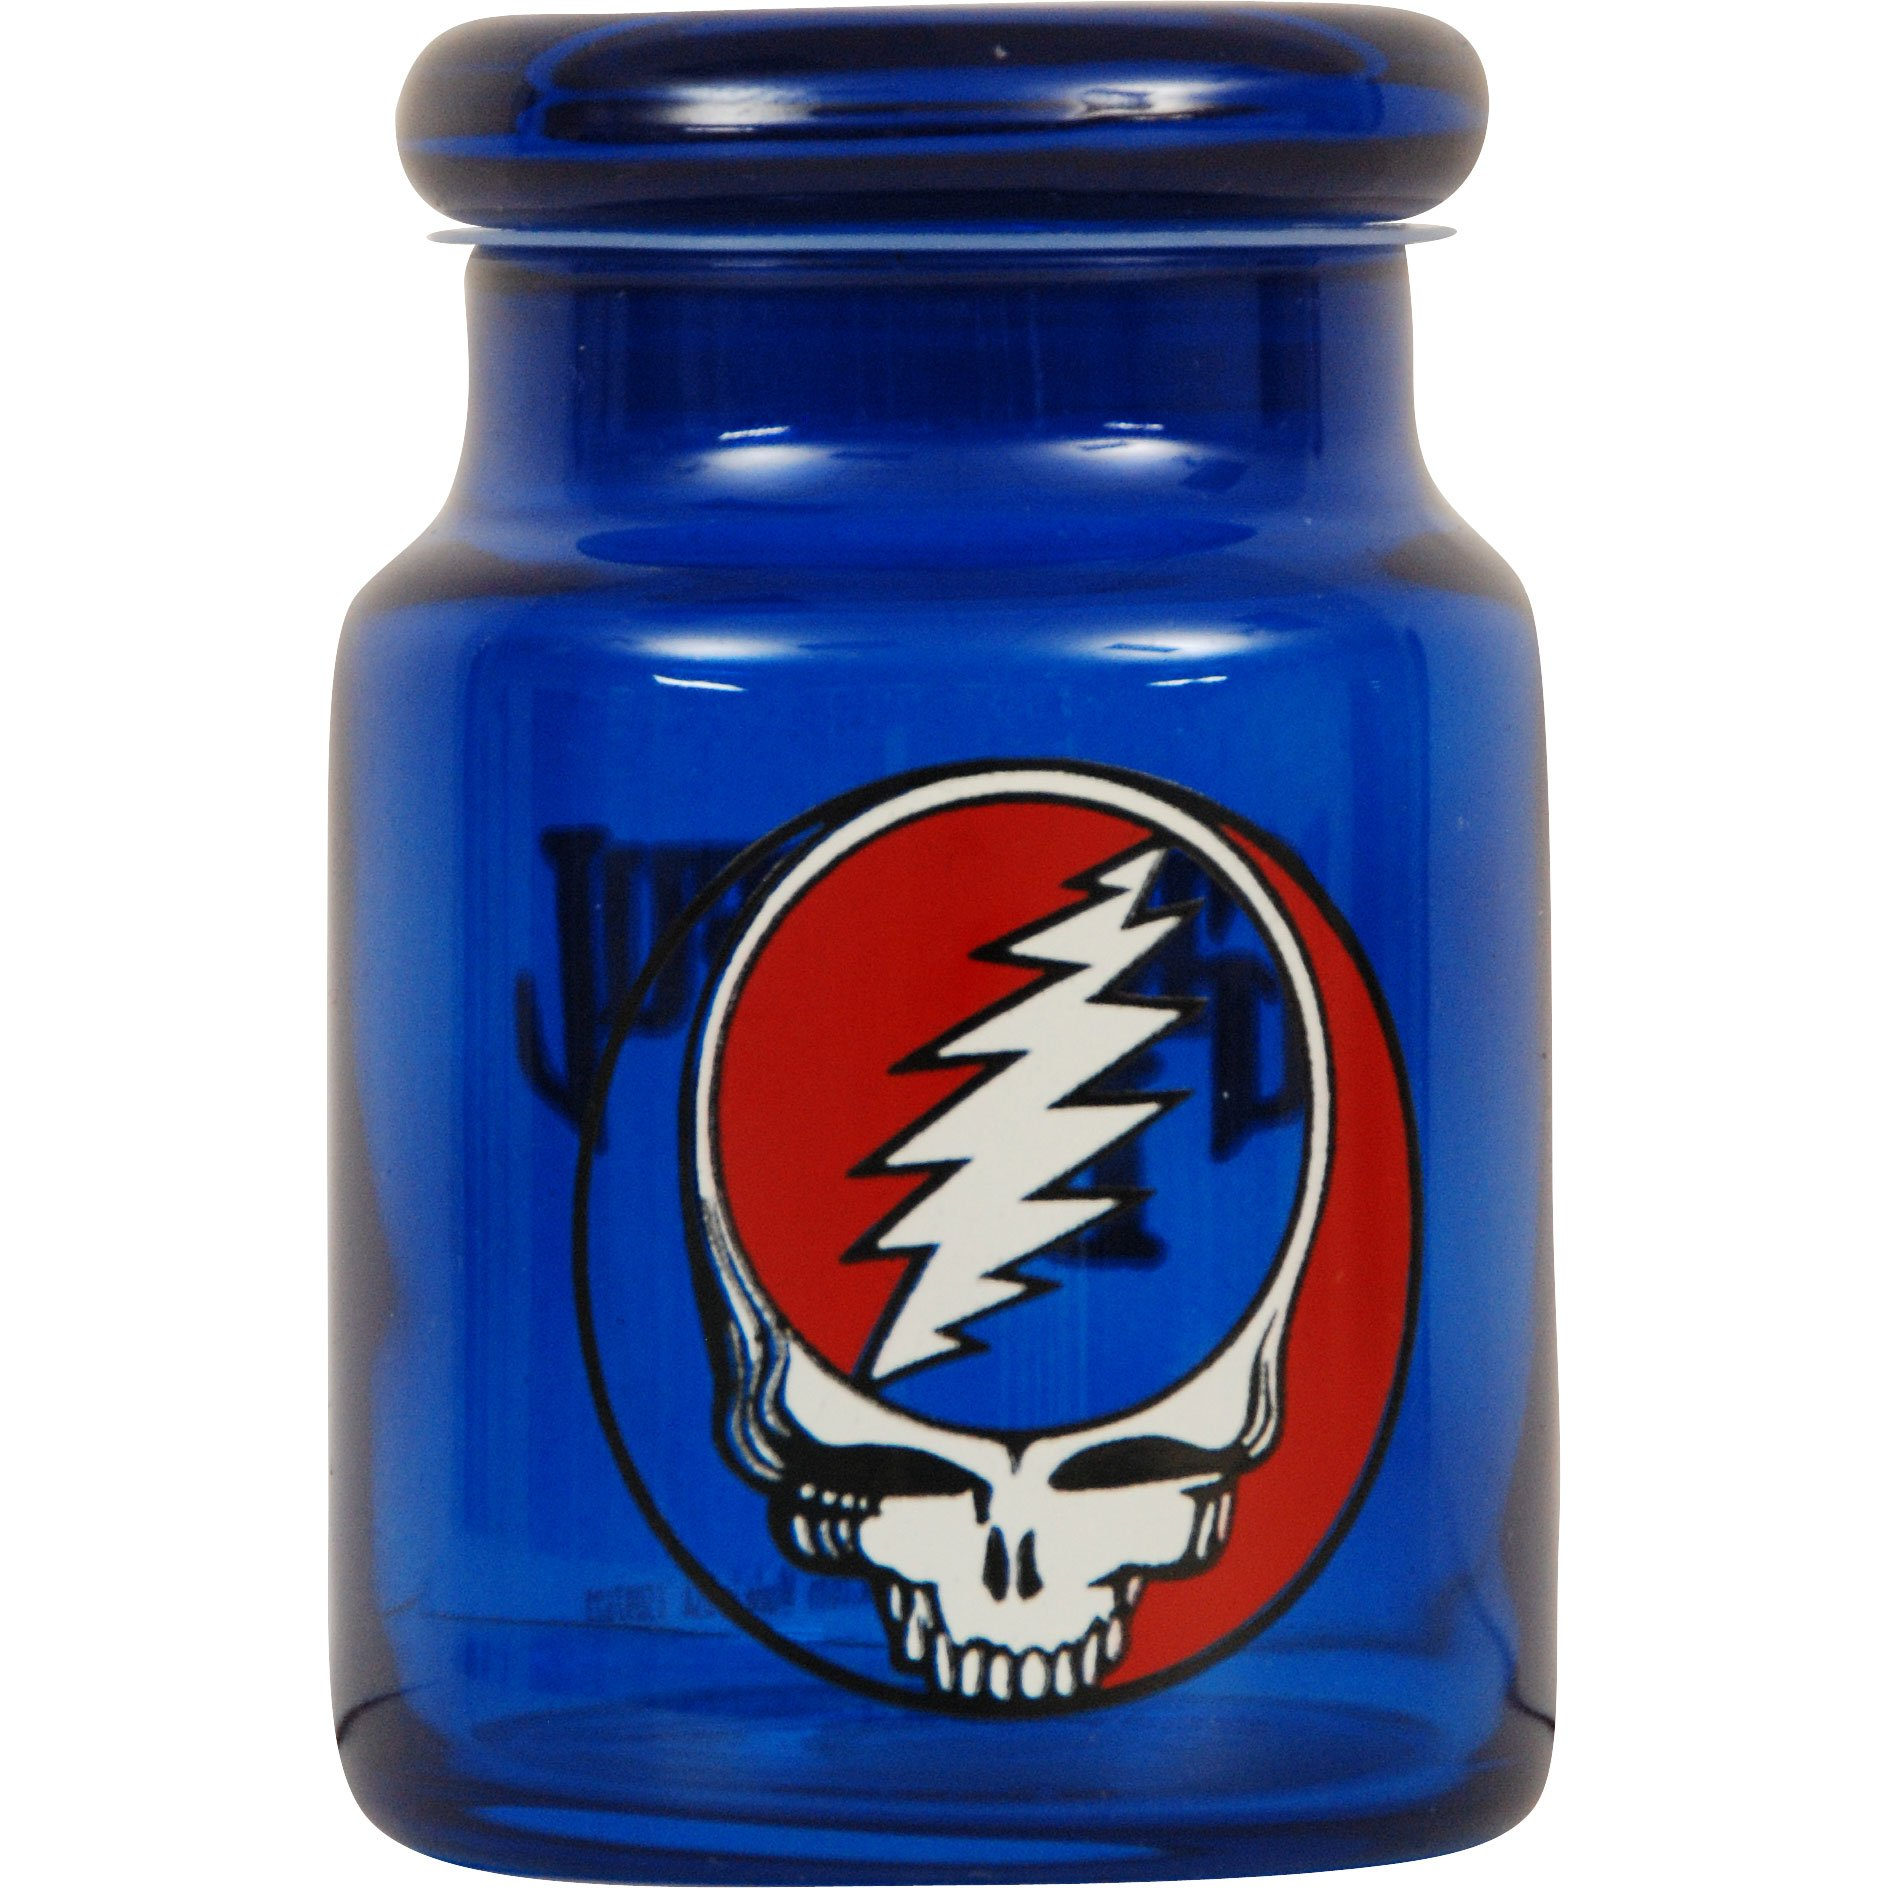 ICUP Grateful Dead Steal Your Face Jar, 6 oz, Clear